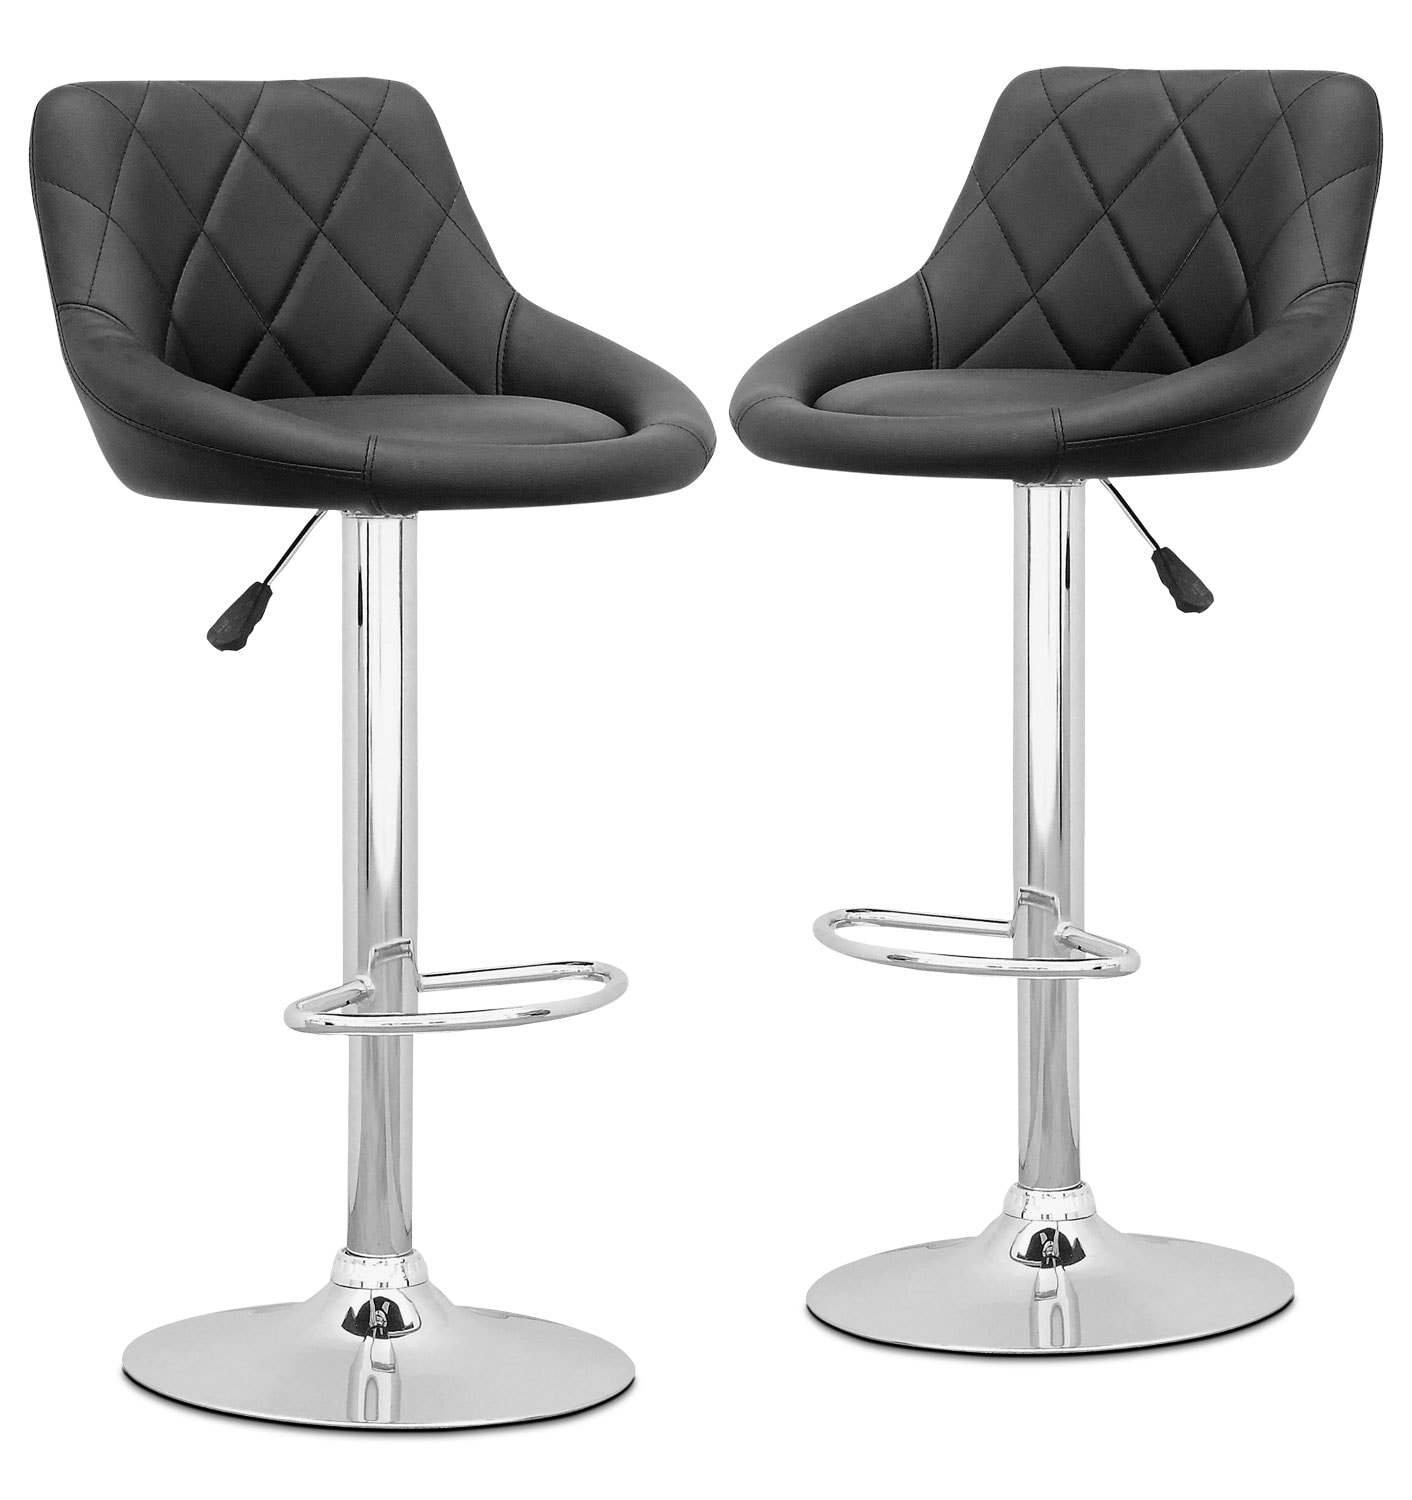 Adjustable Diamond Back Bar Stool Set Of 2 Black The Brick